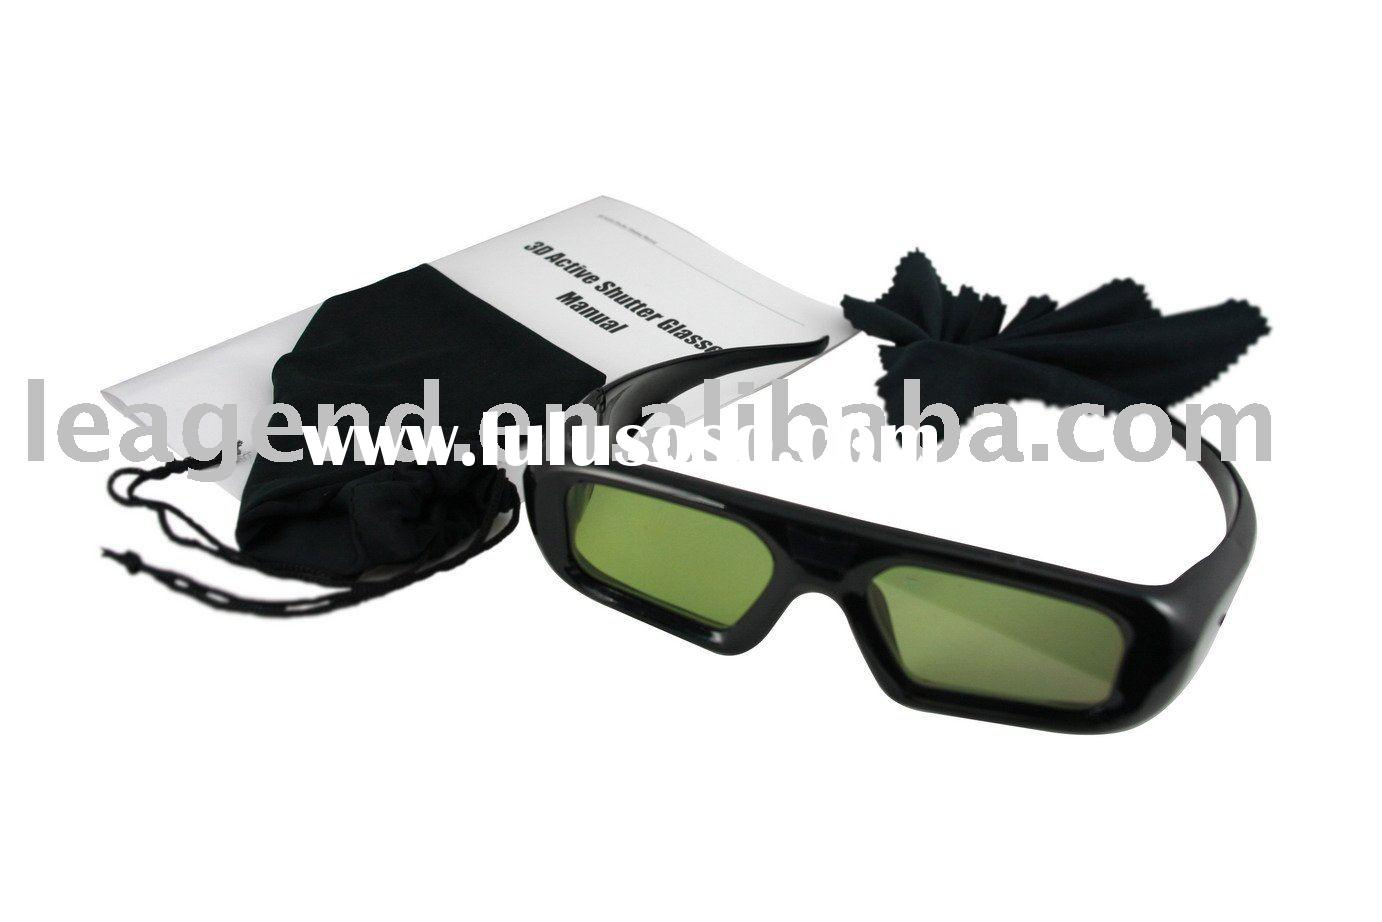 3D active shutter glasses for 3D TV and 3D projector(black)